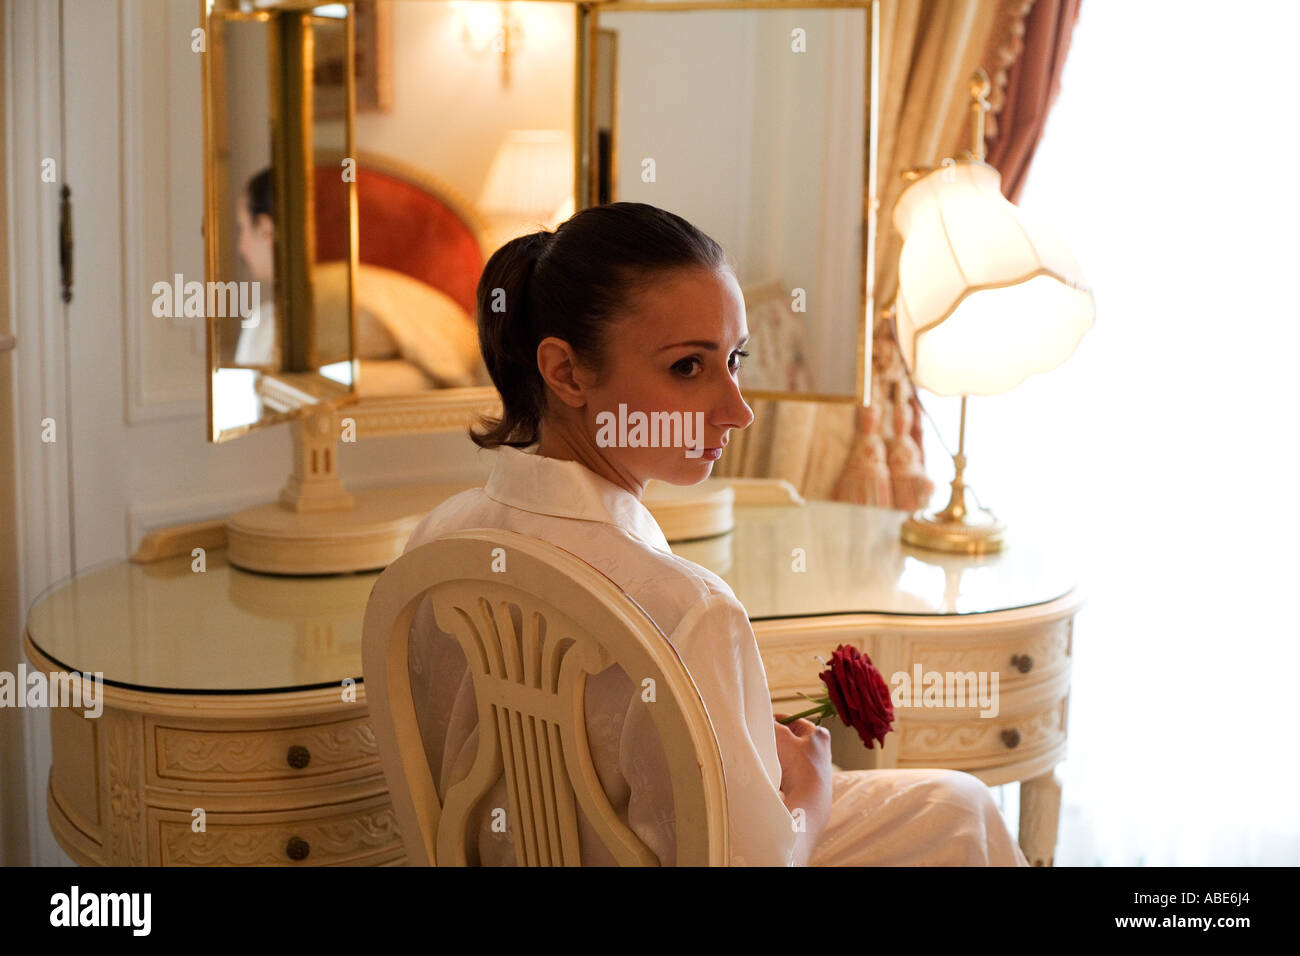 Fantastic Hotel Dressing Gown Images - Wedding and flowers ...